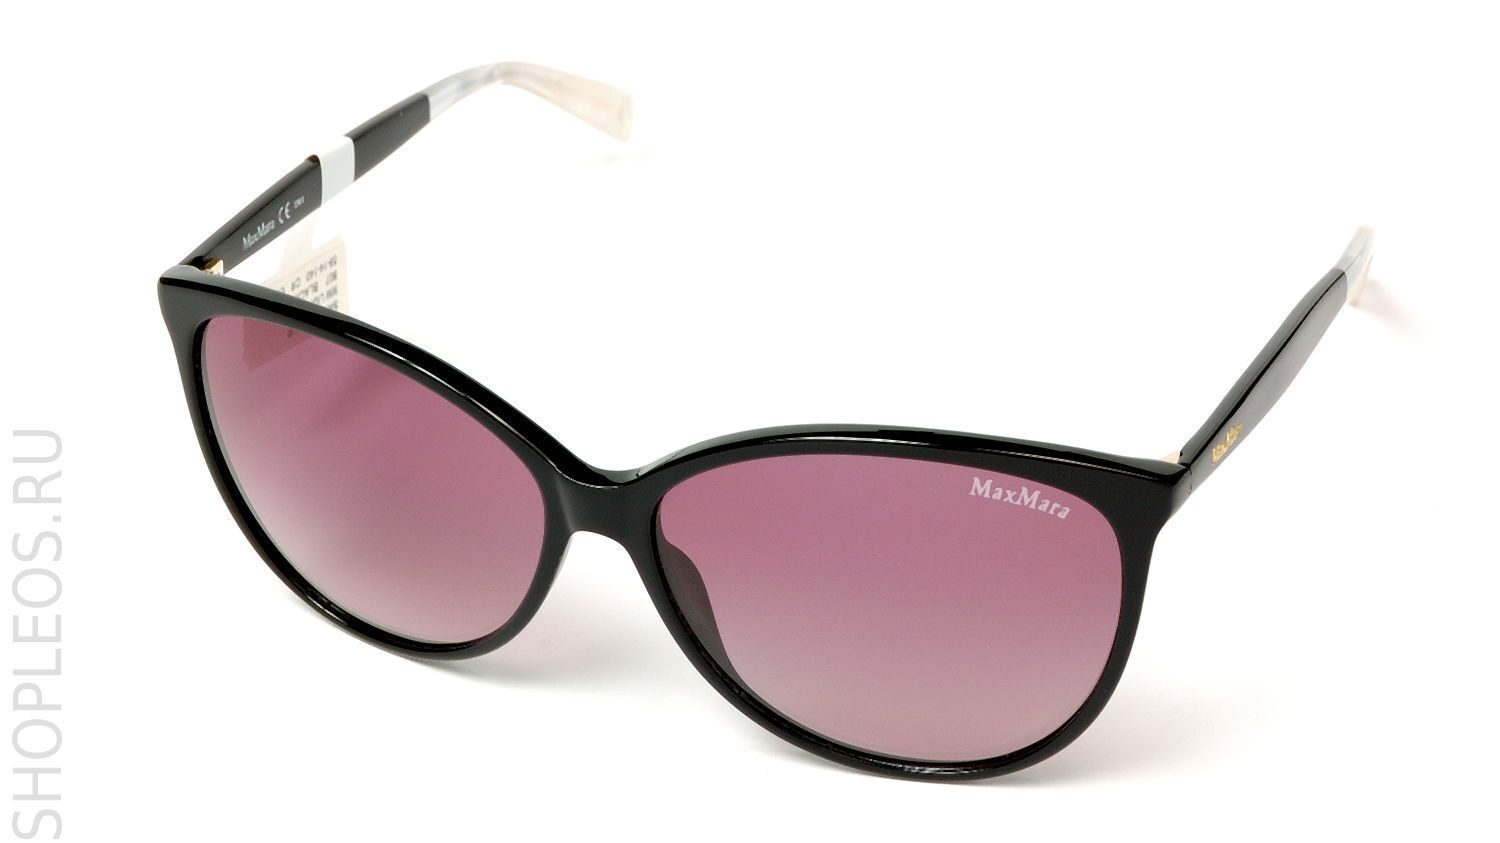 MAXMARA WOMAN MM LIGHT II 807